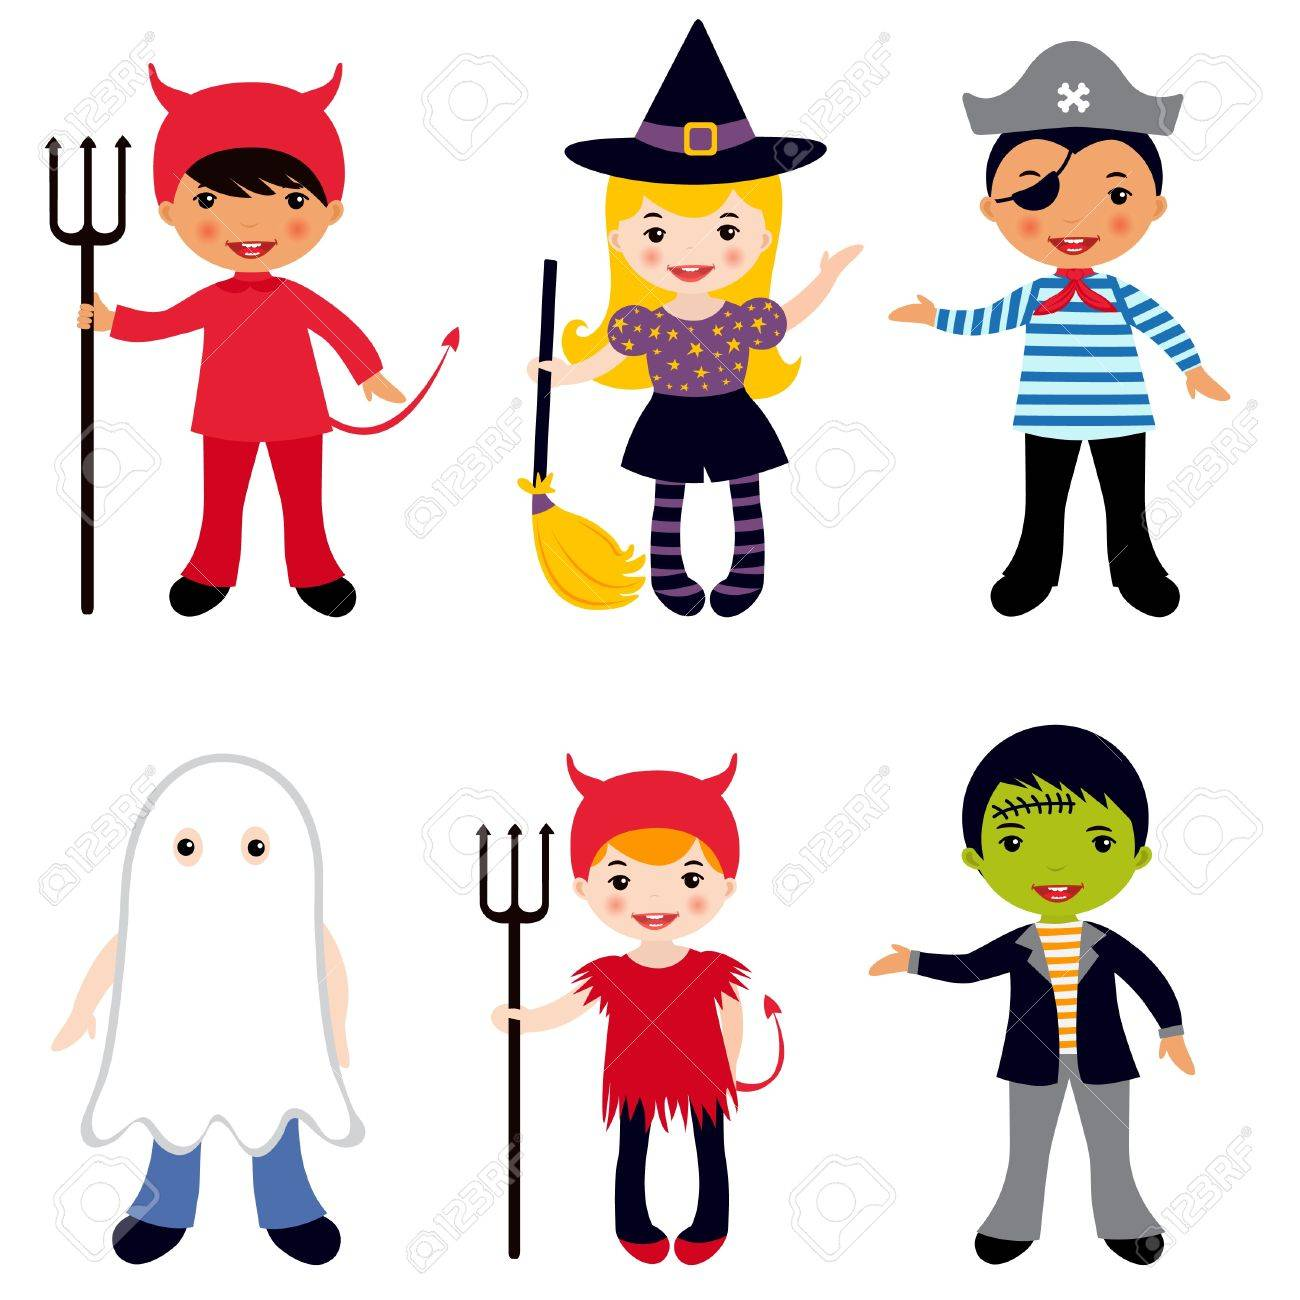 Halloween Kids Royalty Free Cliparts, Vectors, And Stock ...